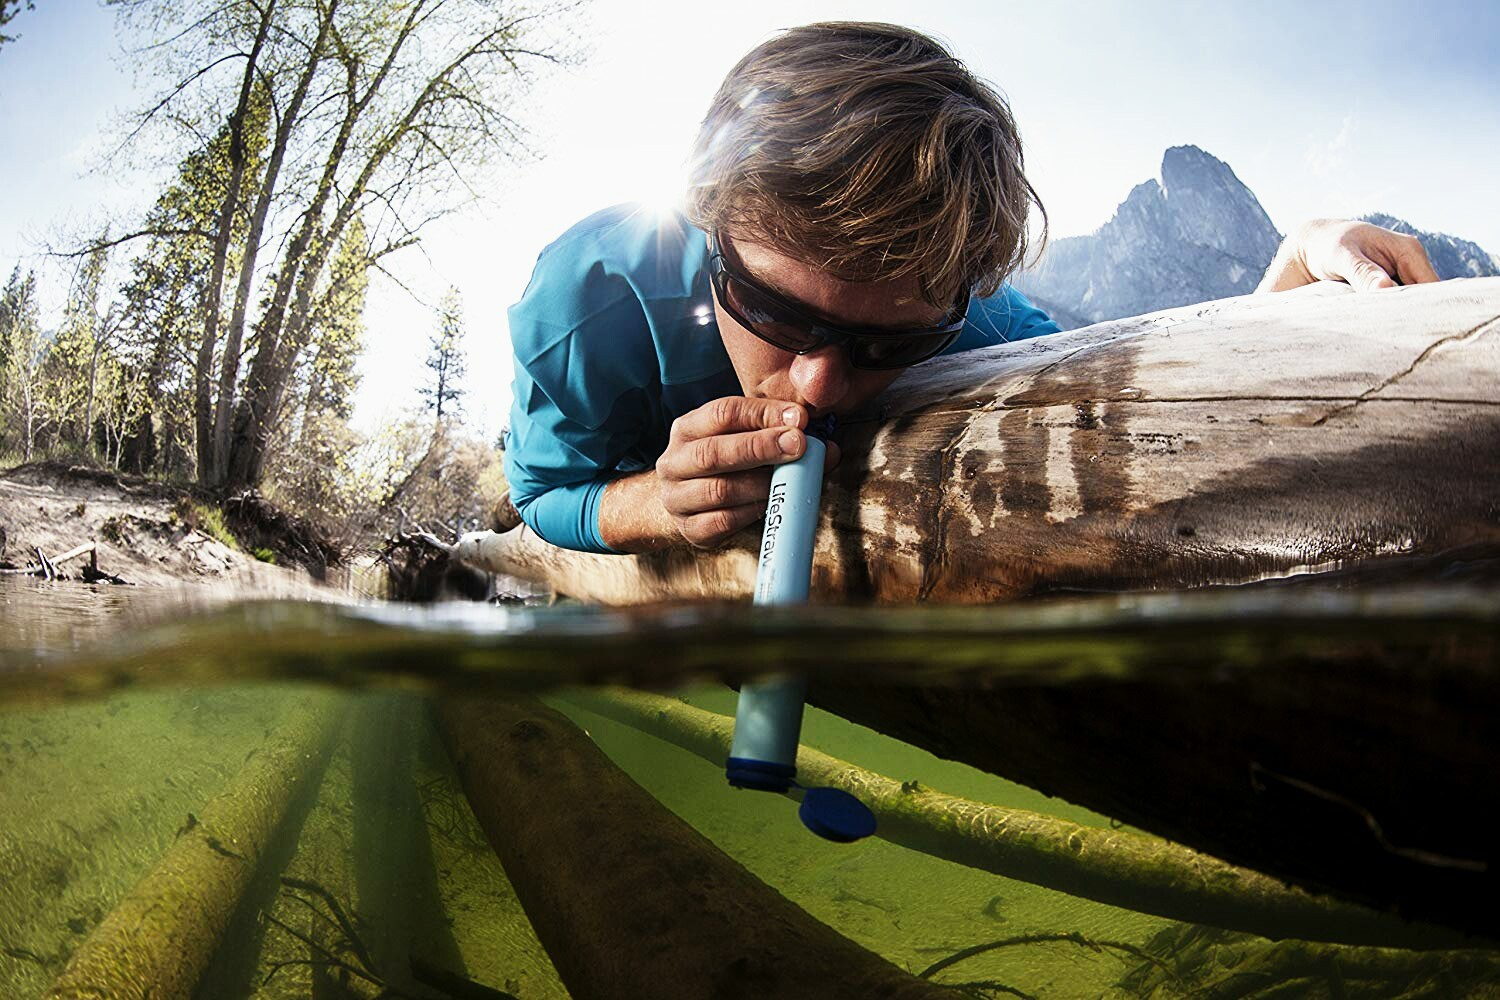 lifeStraw Water Filter Full Review